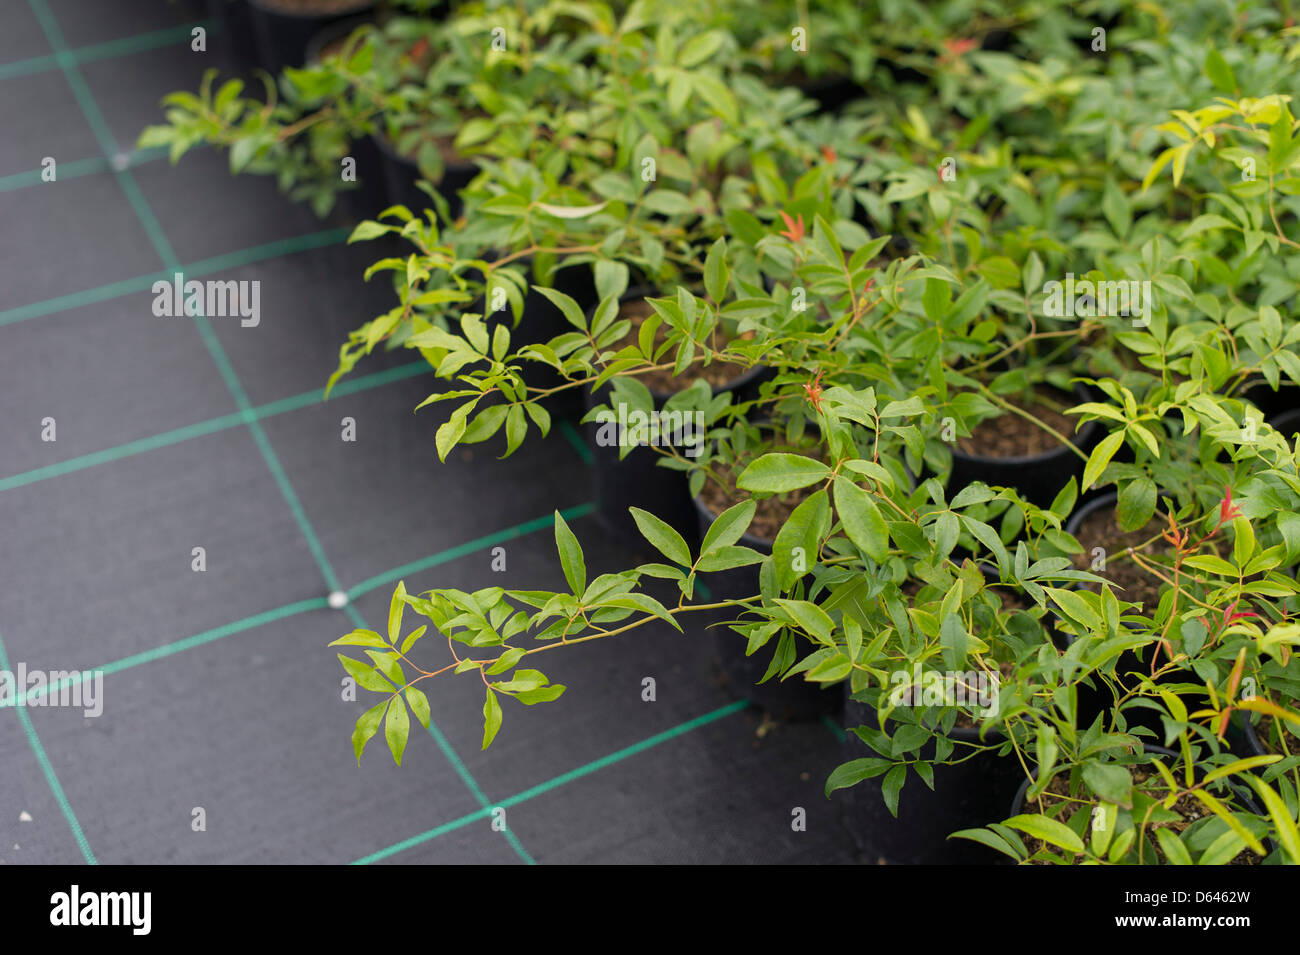 young plants growing in a garden nursery - Stock Image